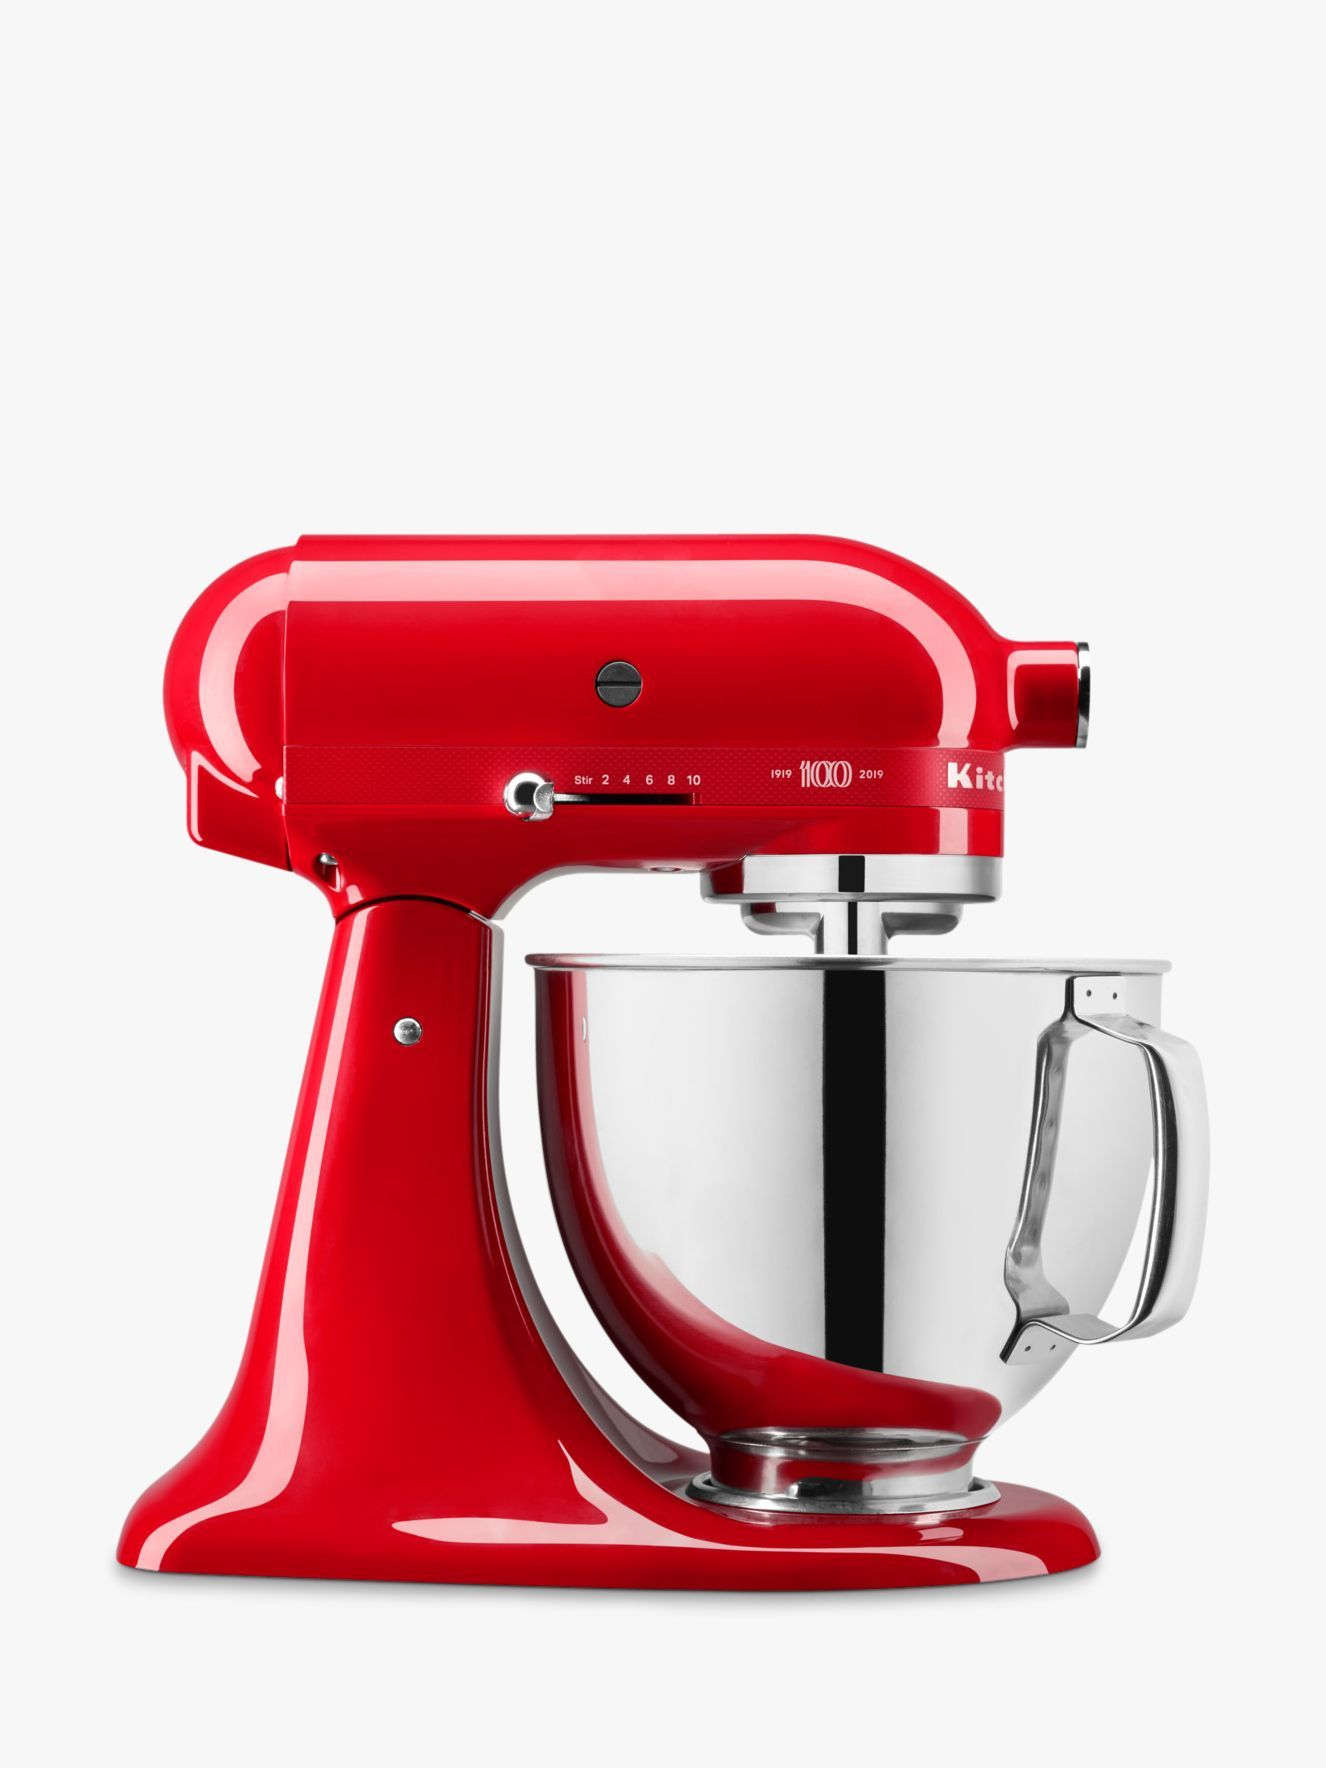 Kitchenaid Queen Of Hearts 5ksm180hbsd 4 8l Stand Mixer Red In